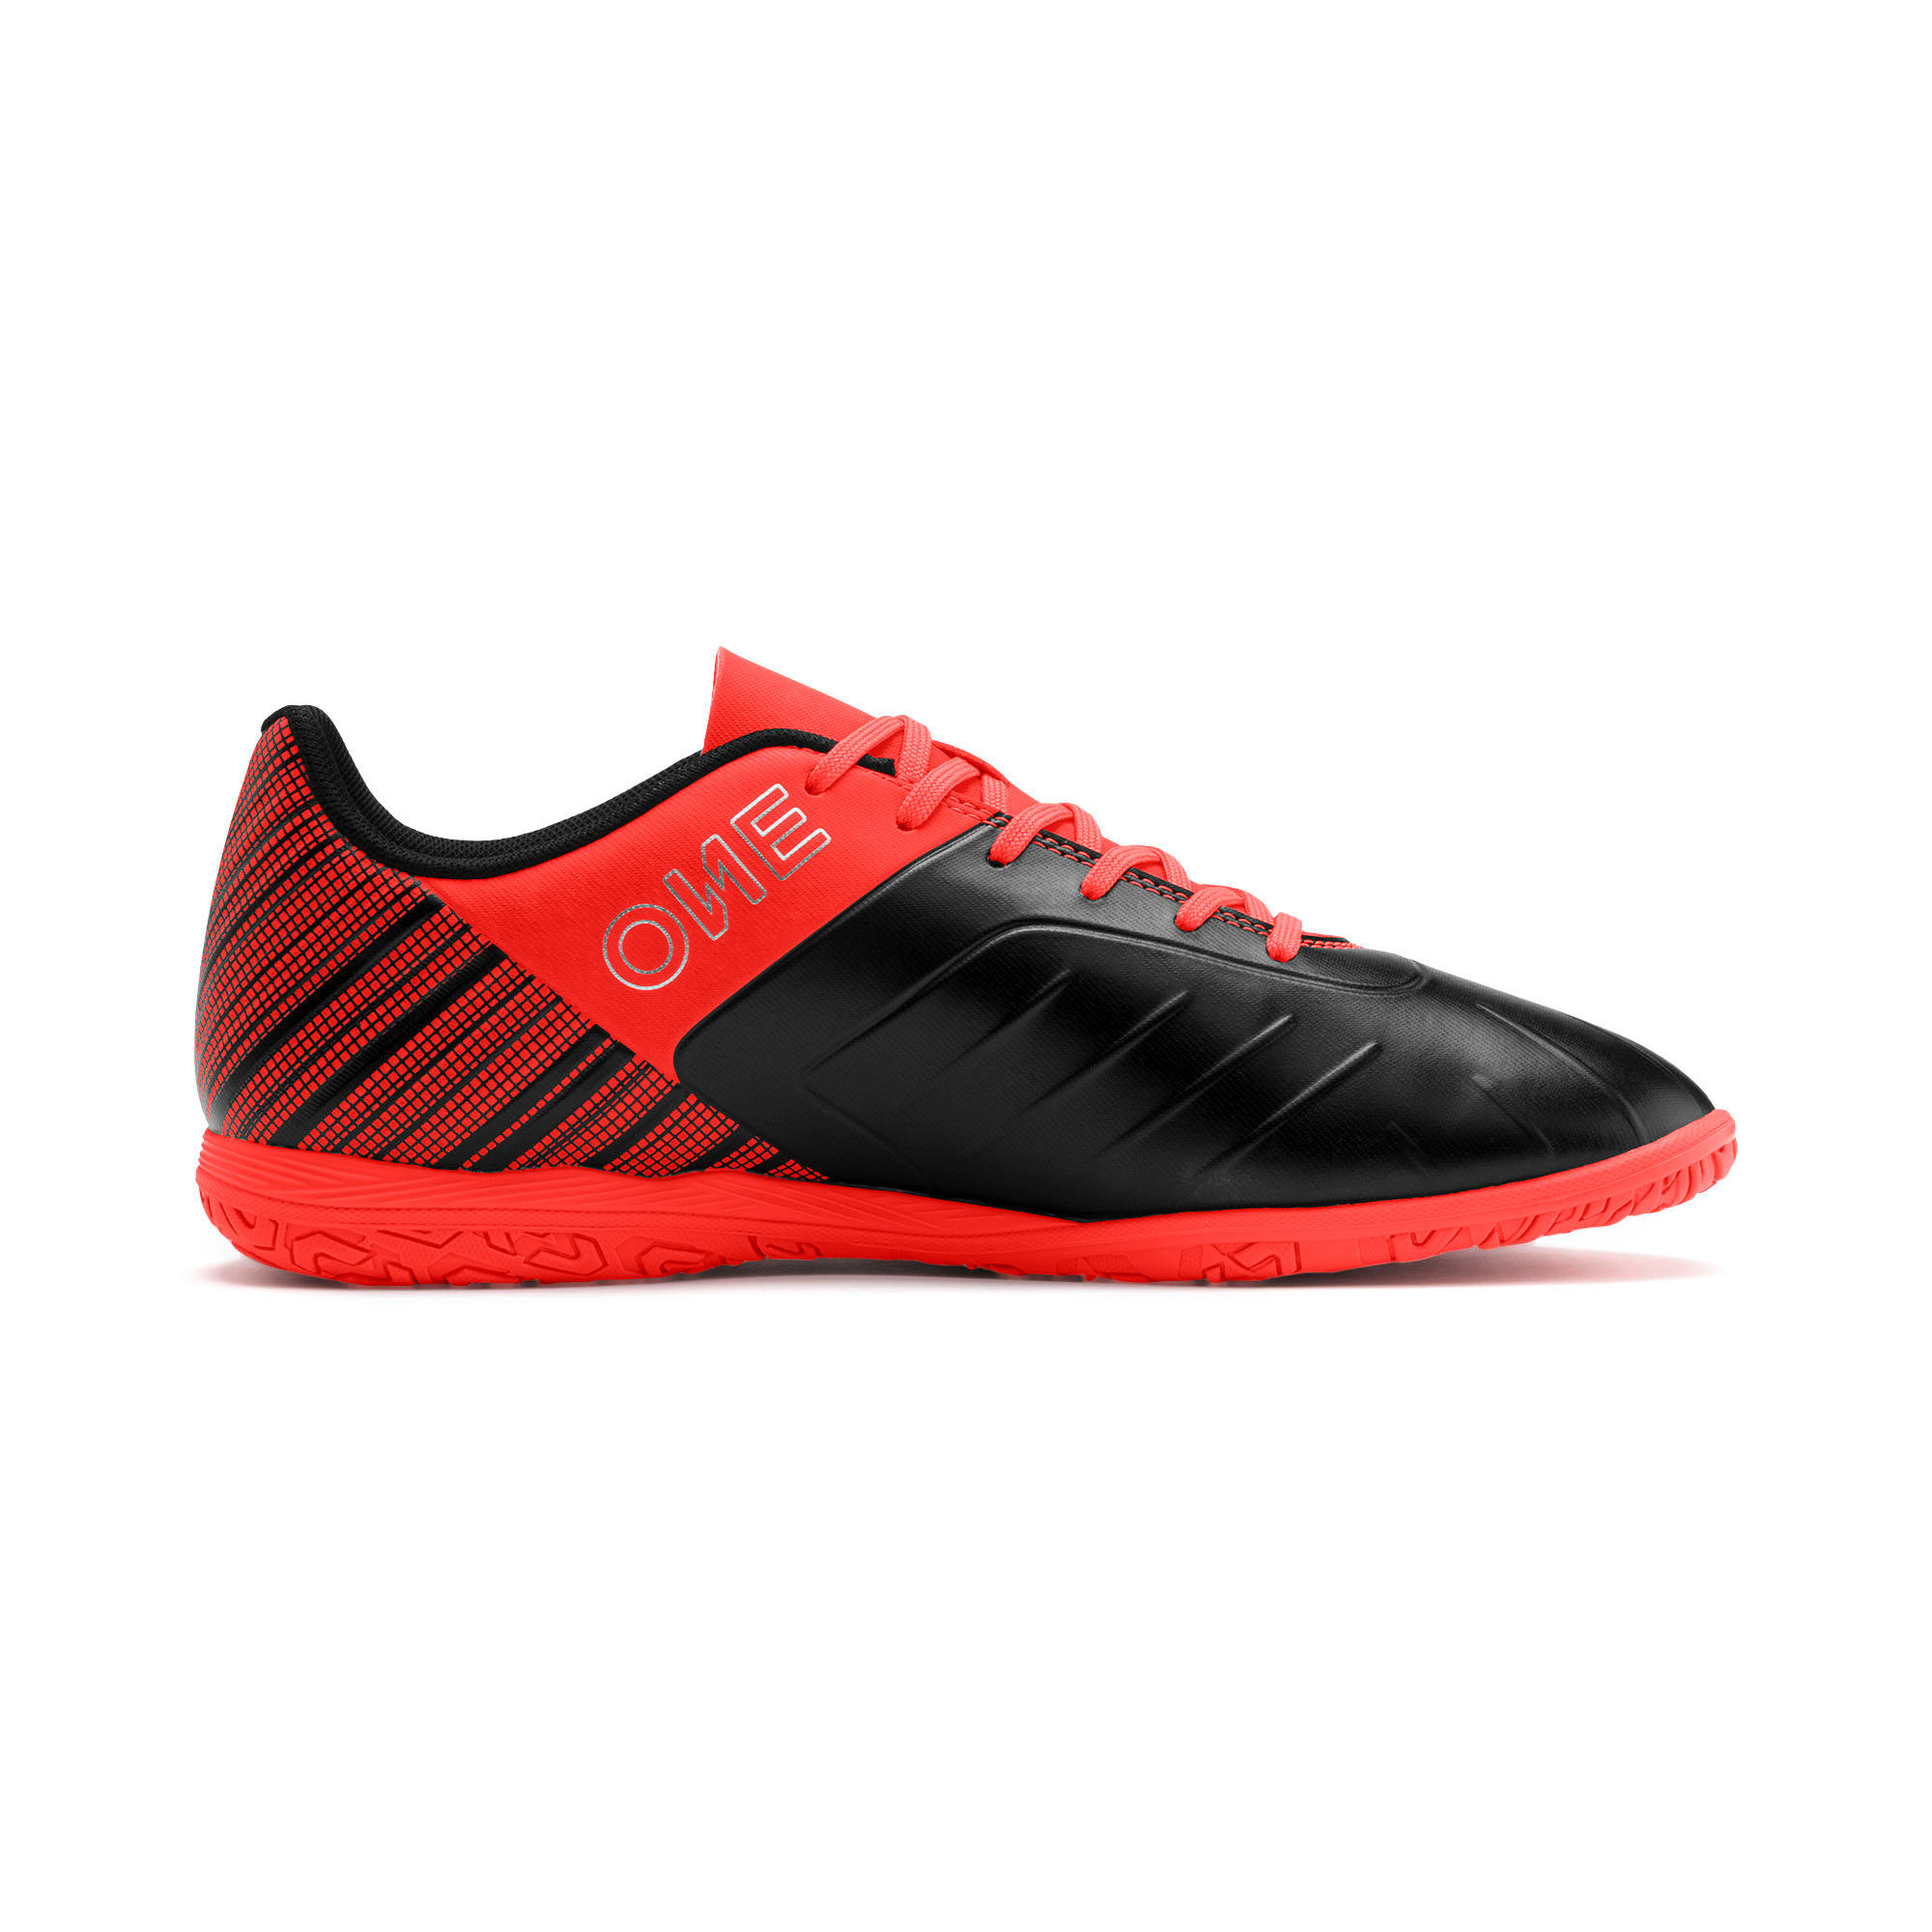 Thumbnail 7 of PUMA ONE 5.4 IT Men's Football Boots, Black-Nrgy Red-Aged Silver, medium-IND